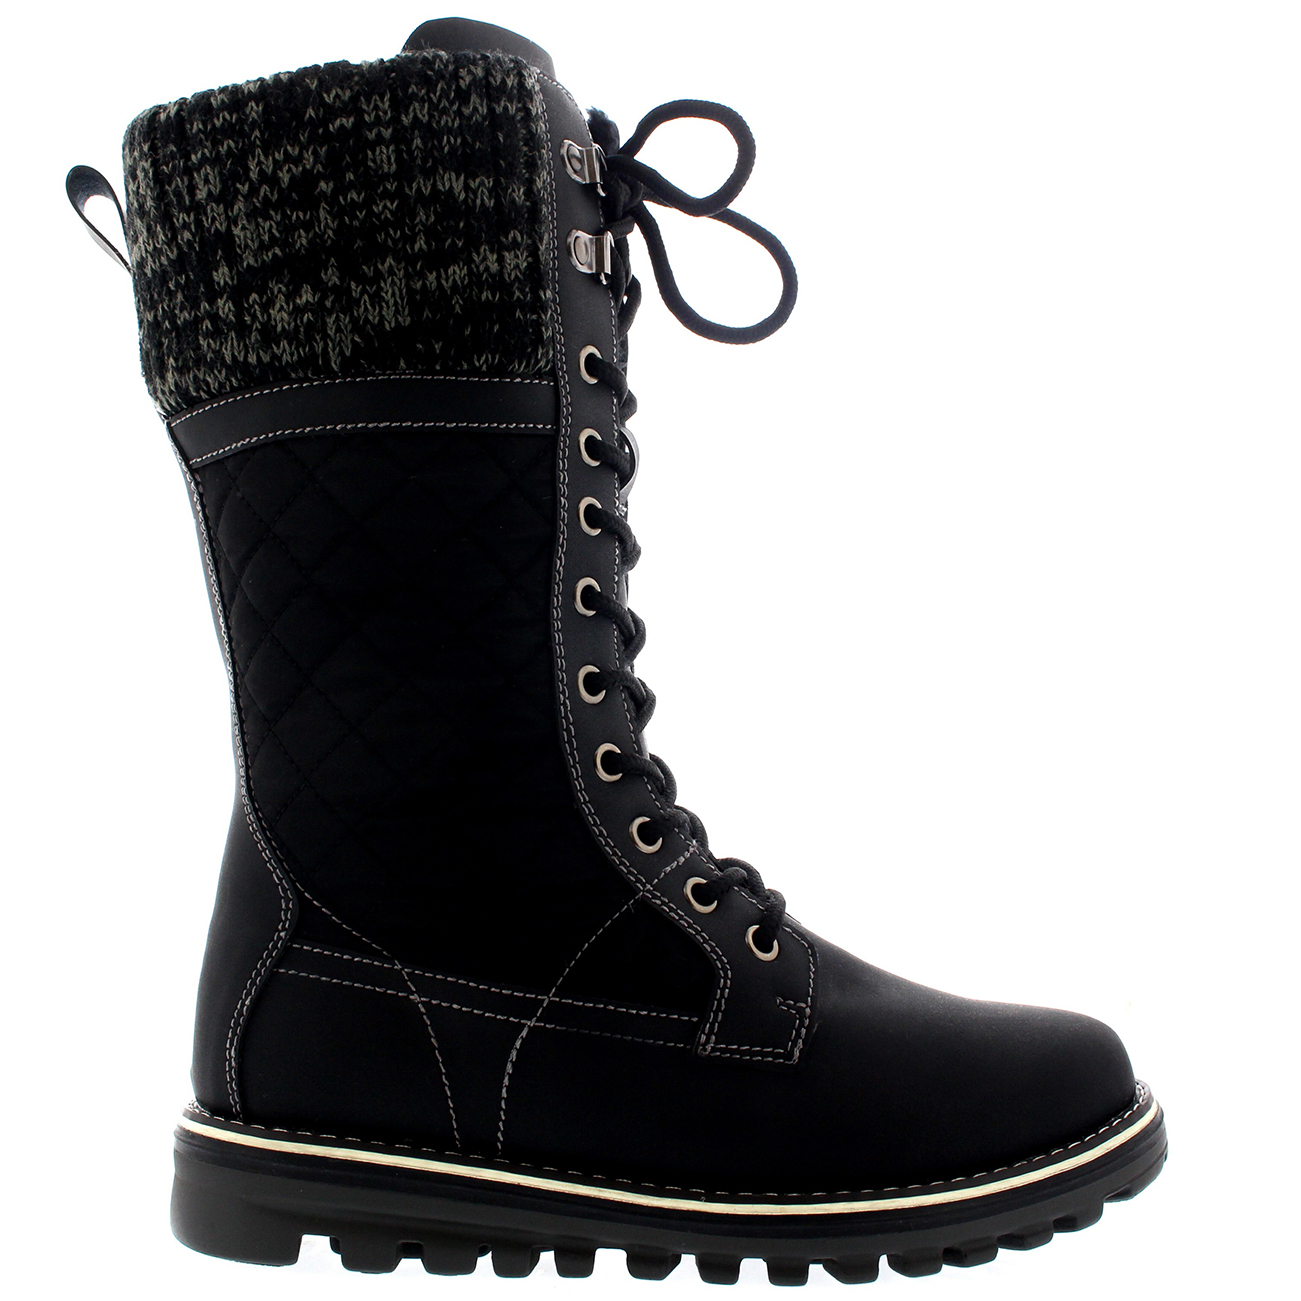 Winter Lace Up Shoes